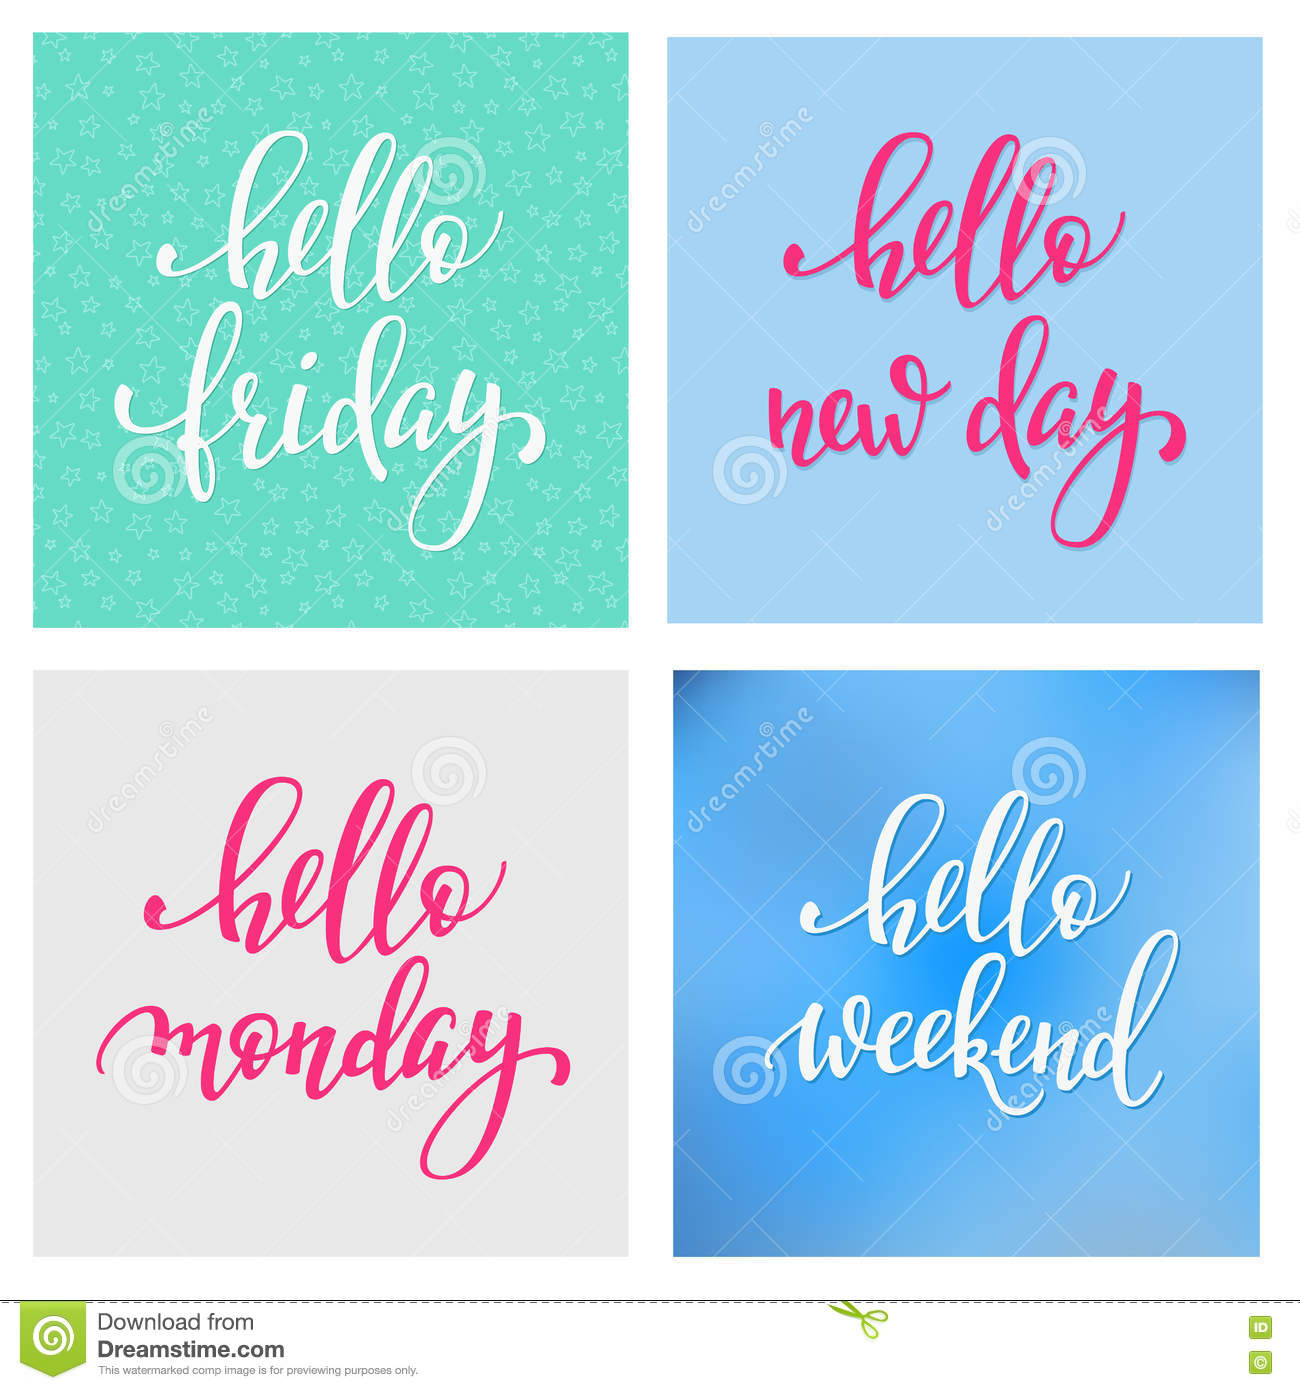 Hello Friday Monday Weekend New Day Lettering